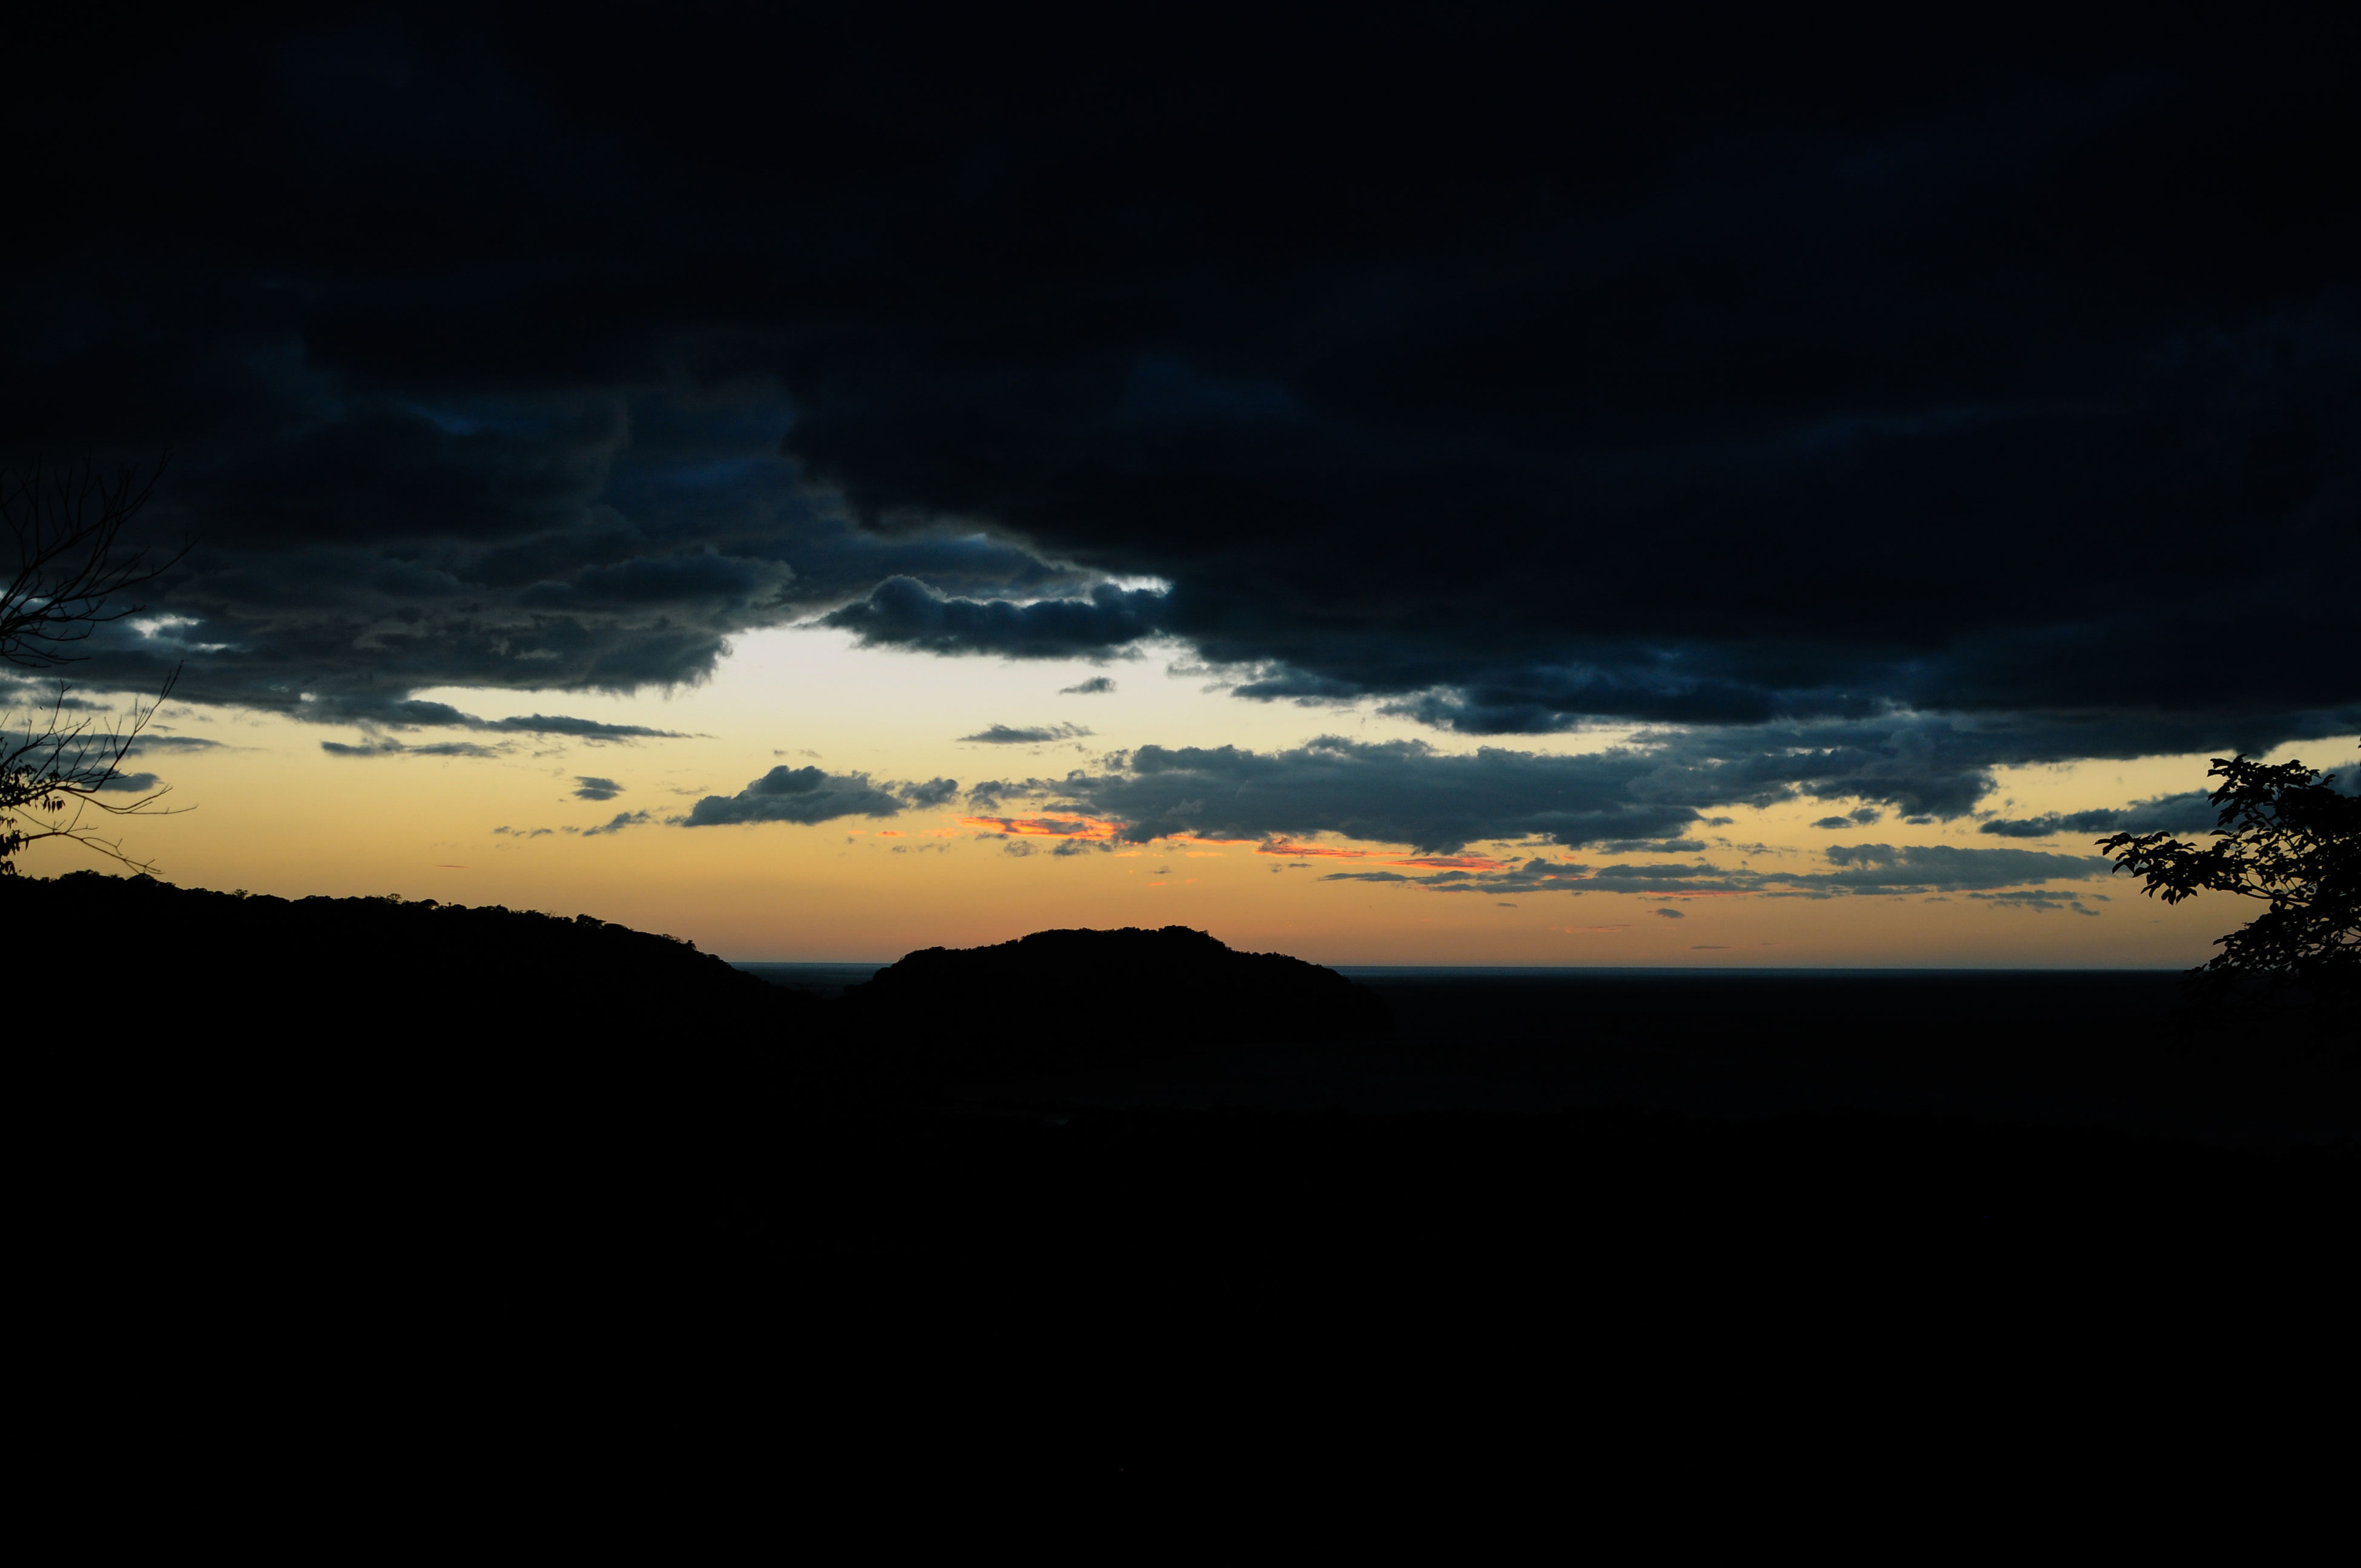 silhouette, sky, sunset, dark, nature, cloud - sky, beauty in nature, scenics, tranquil scene, tranquility, landscape, no people, outdoors, day